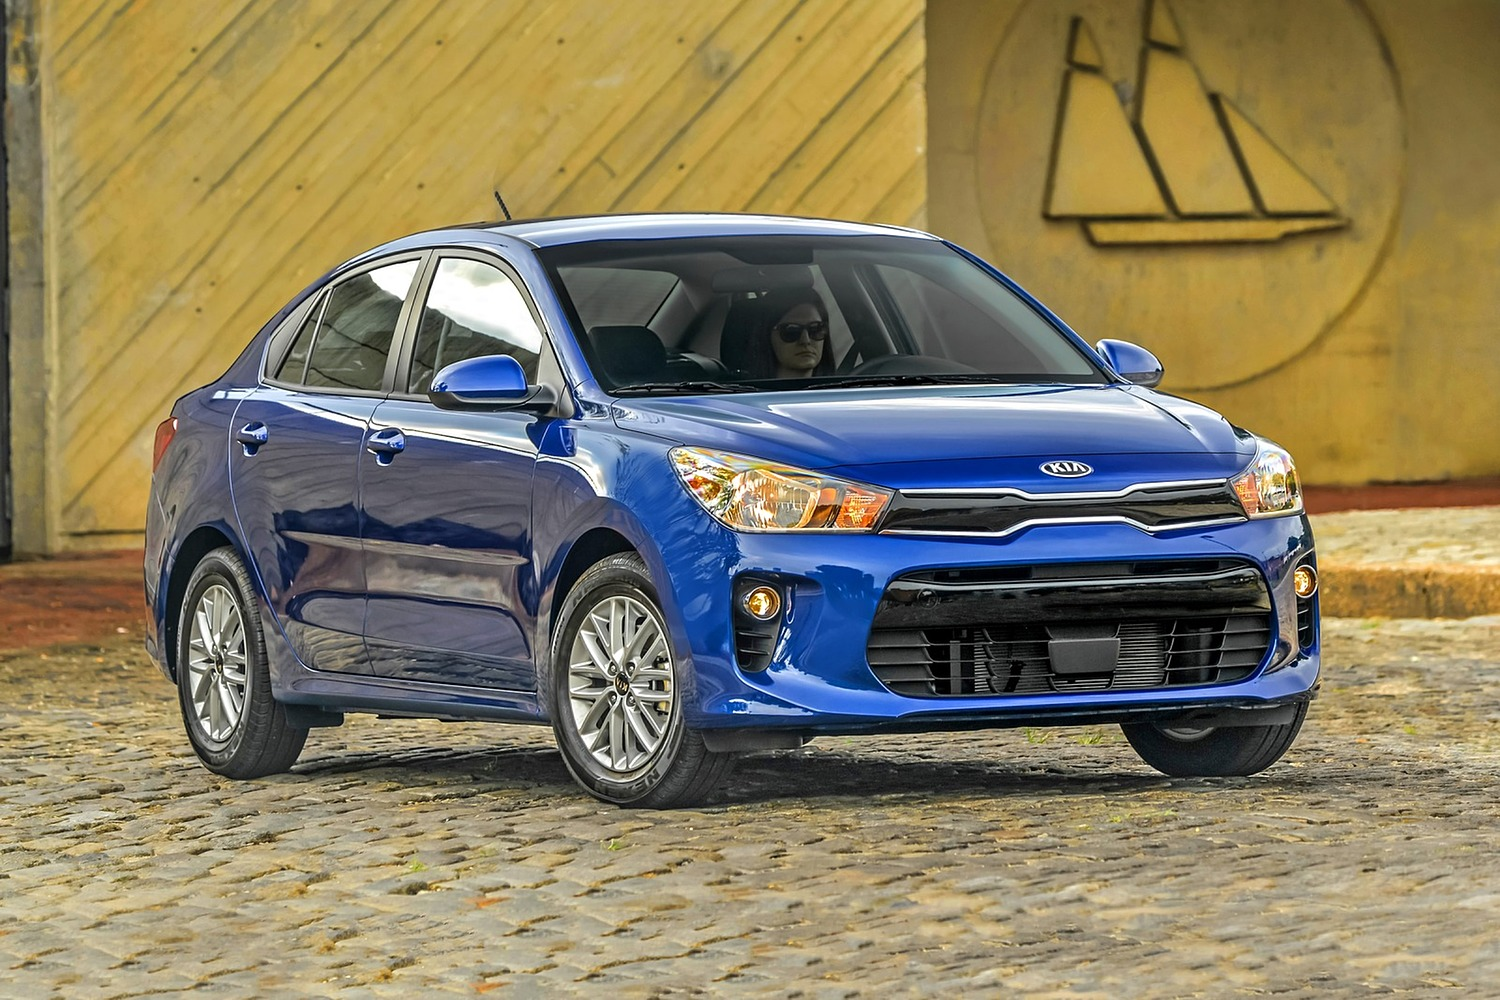 2018 Kia Rio EX Sedan Exterior Shown